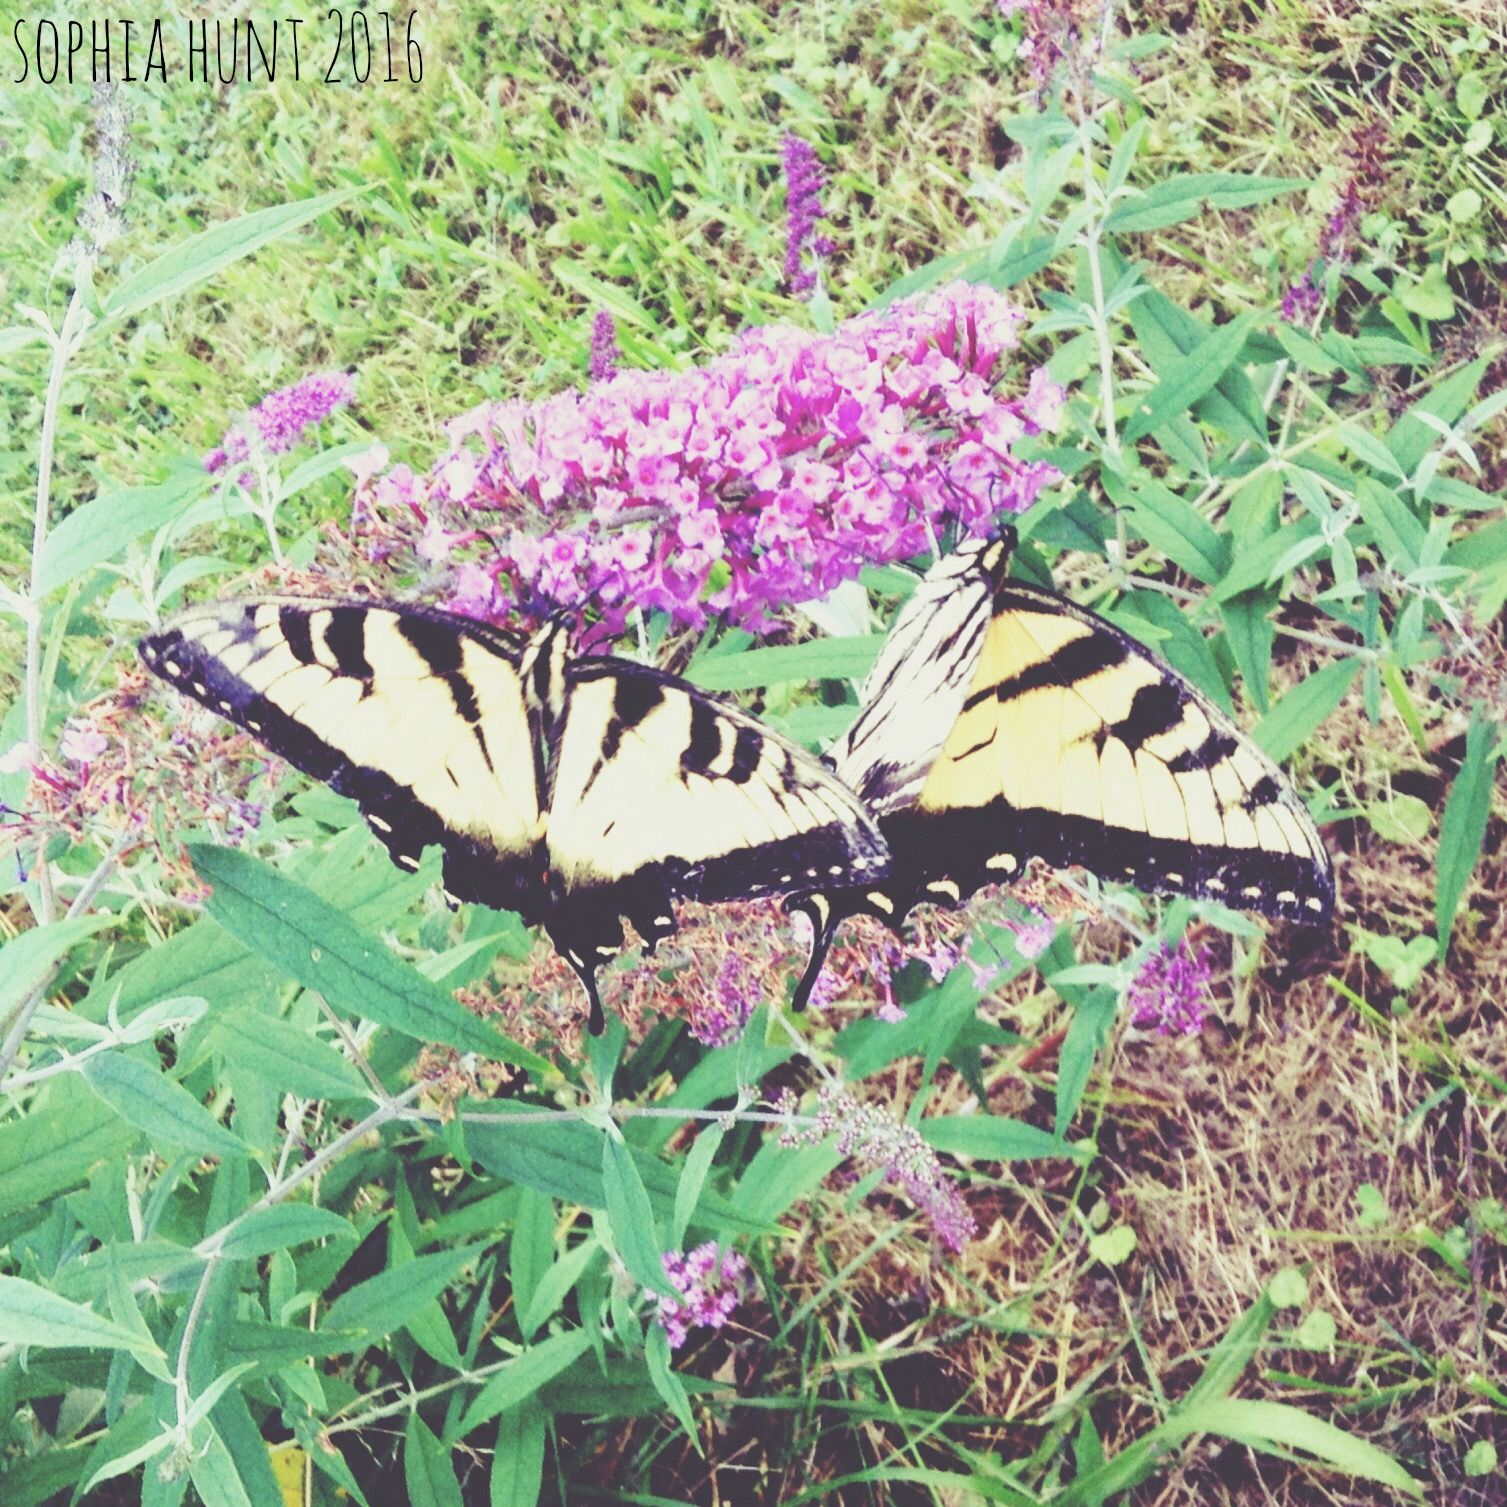 butterfly nature summer photography  Sophia hunt 2016